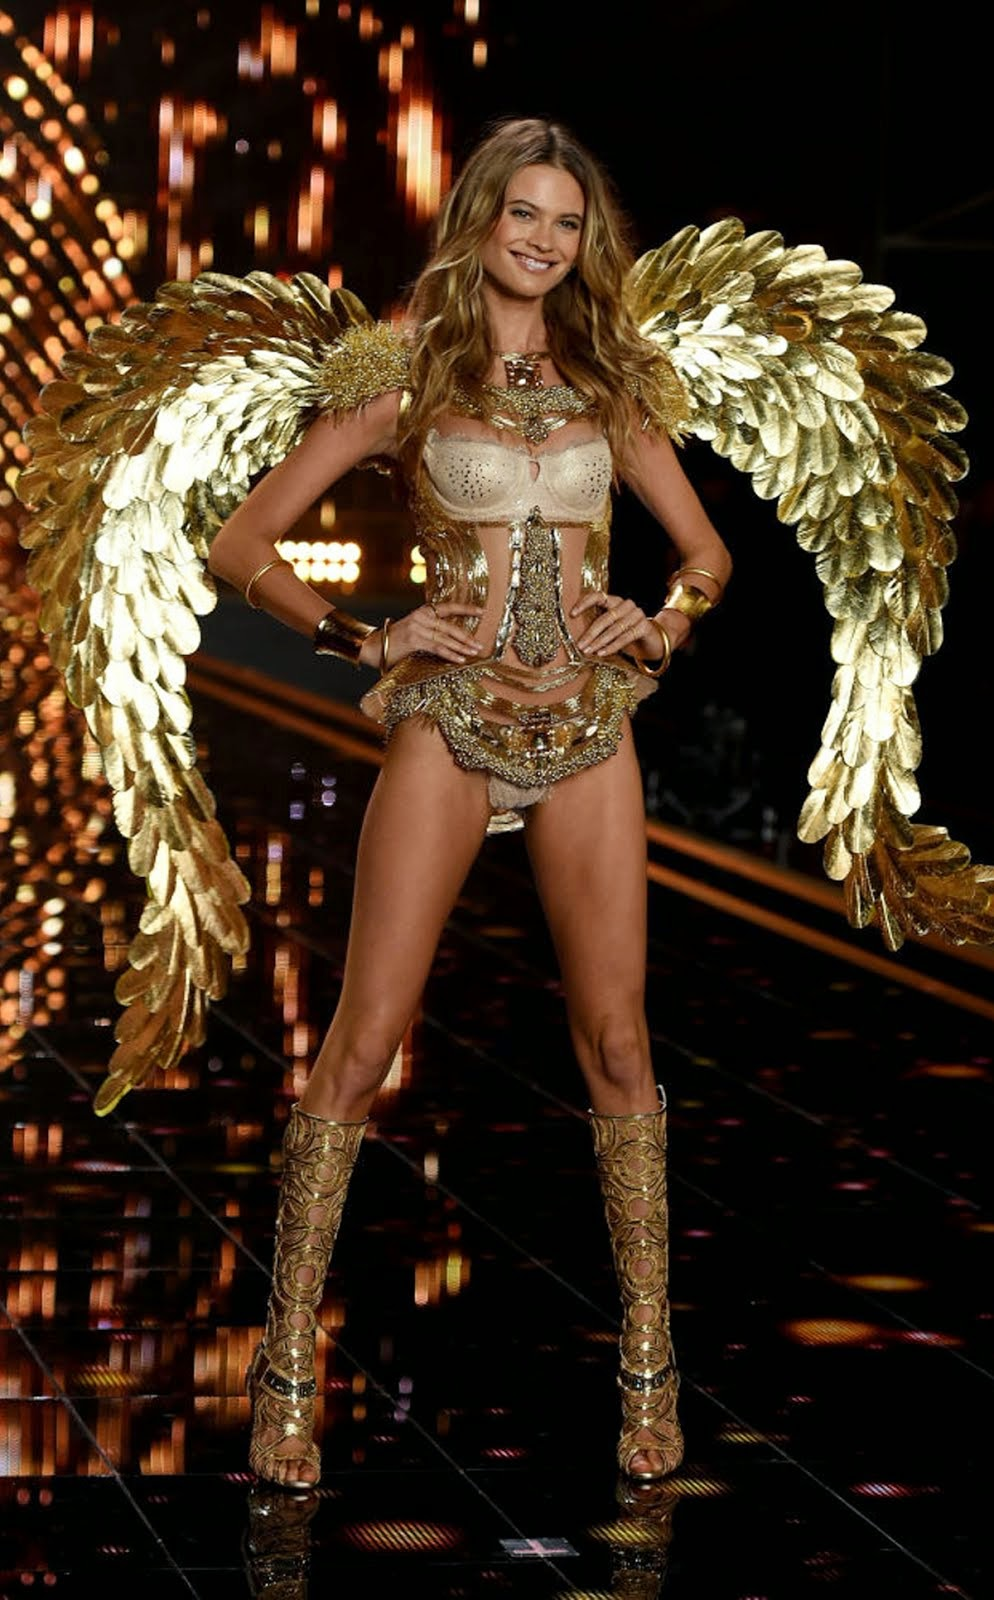 VICTORIA'S SECRET FASHION SHOW 2014 BEHATI PRINSLOO